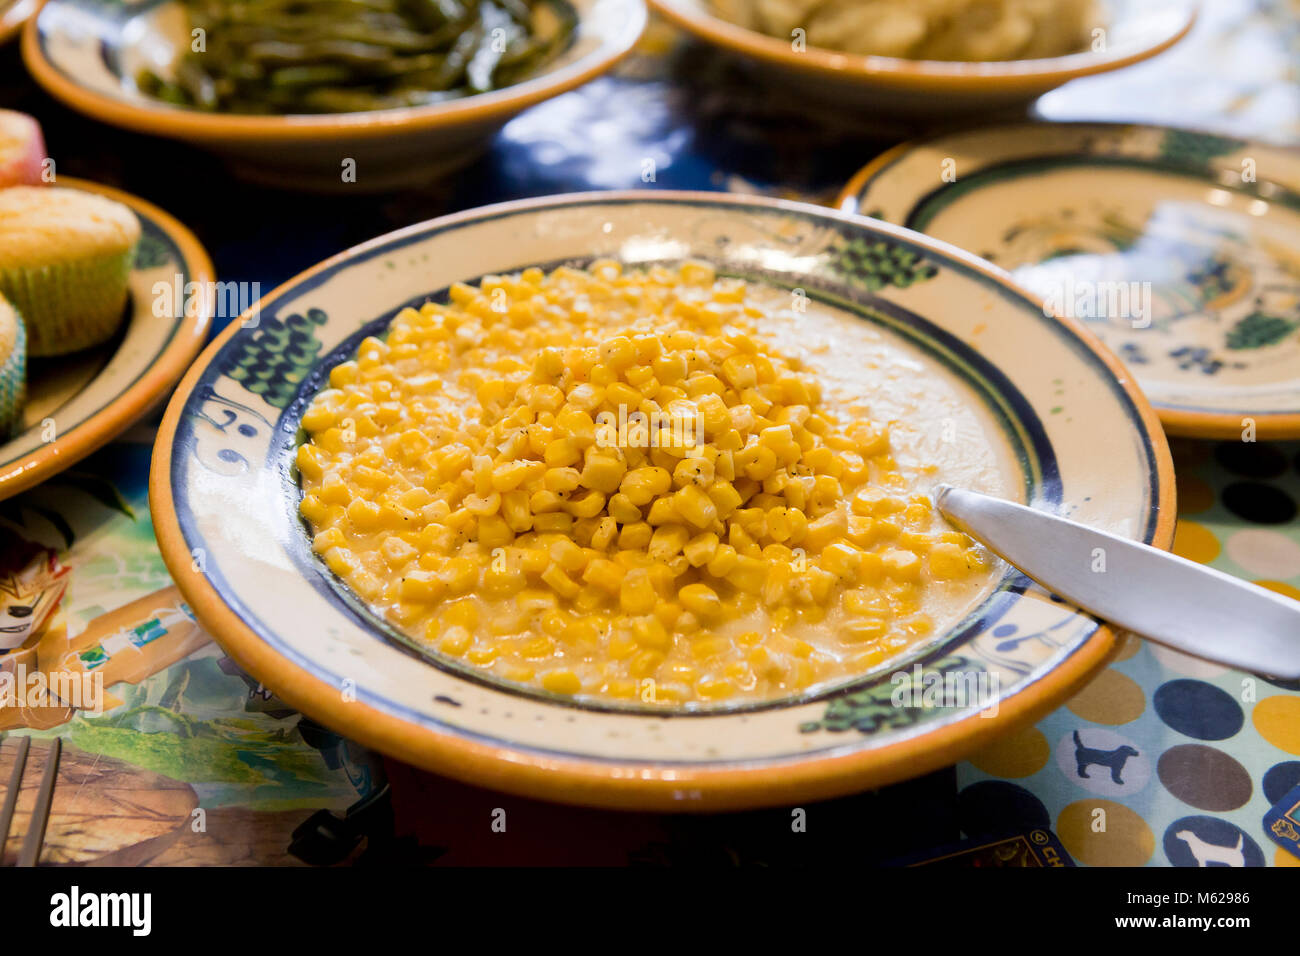 Creamed corn side dish on dinner table - USA - Stock Image